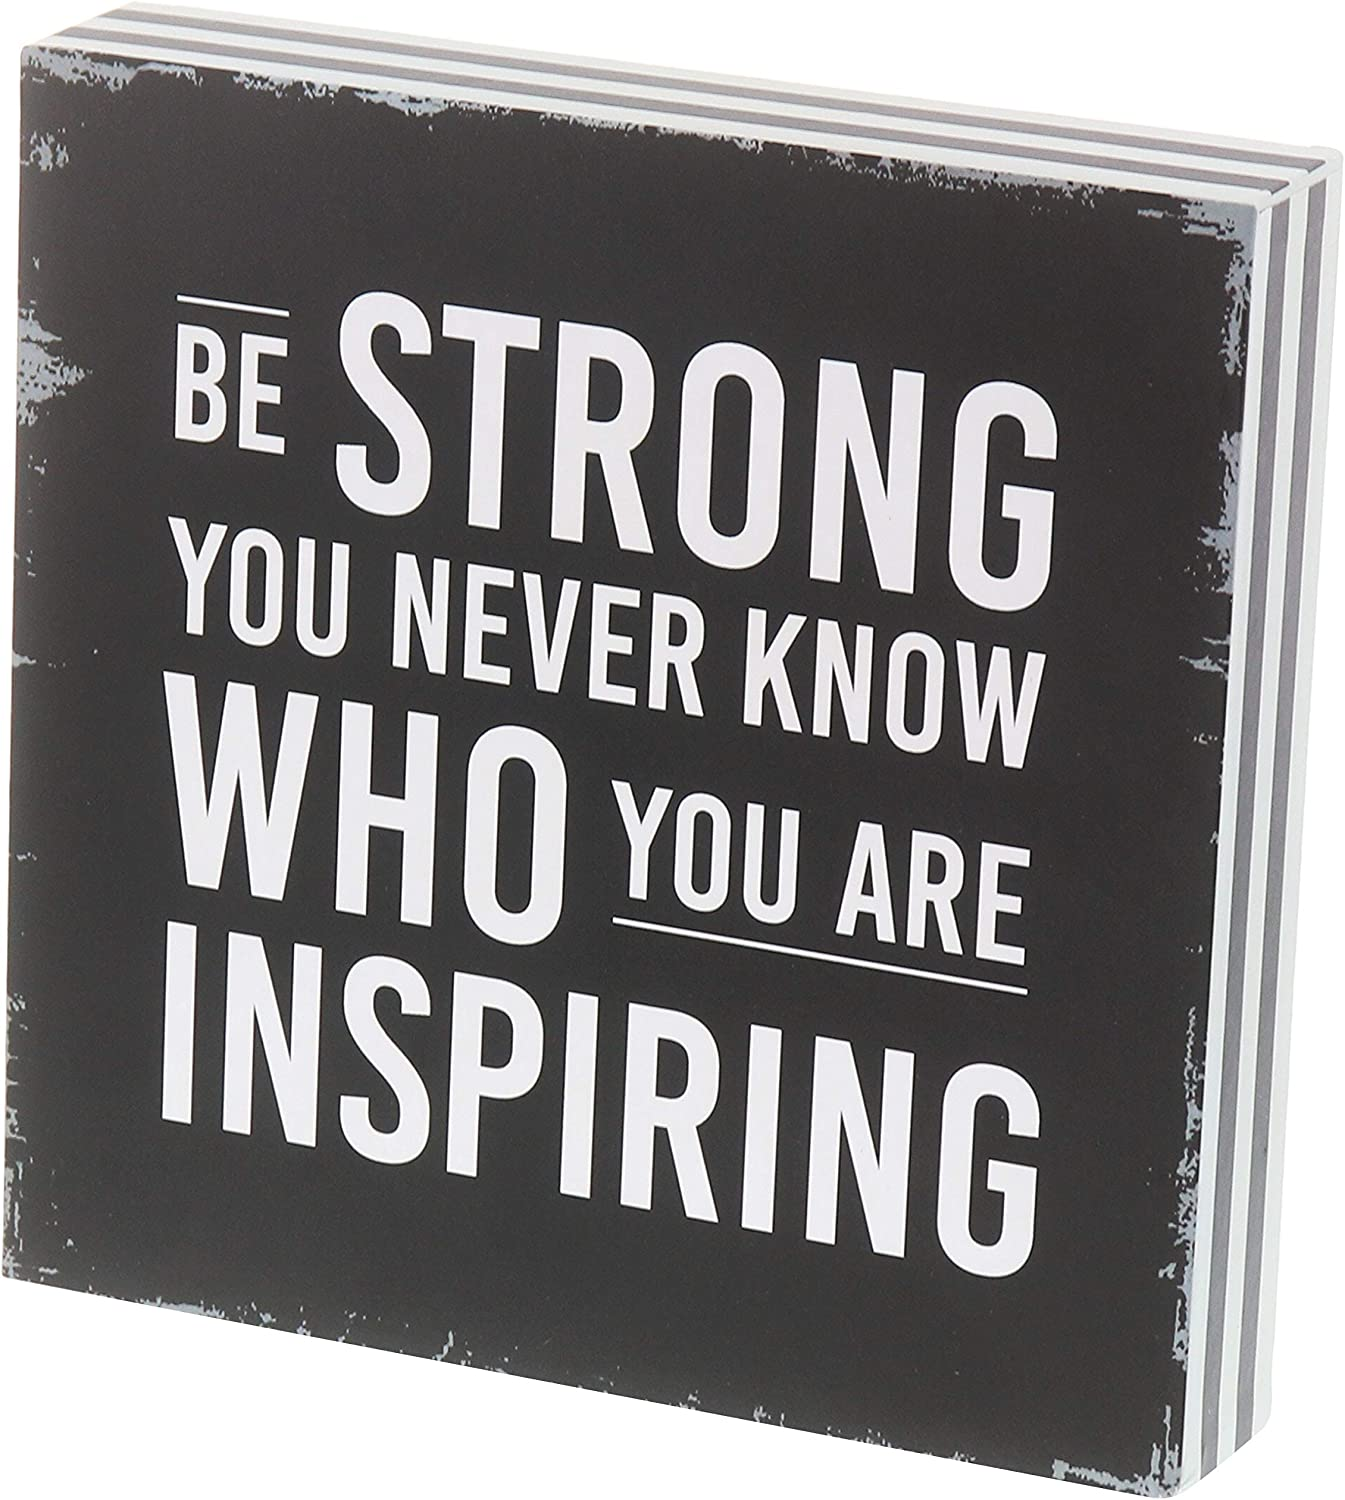 "Barnyard Designs Be Strong You Never Know Who You are Inspiring Box Sign Rustic Wood Inspirational Wall Decor 8"" x 8"""